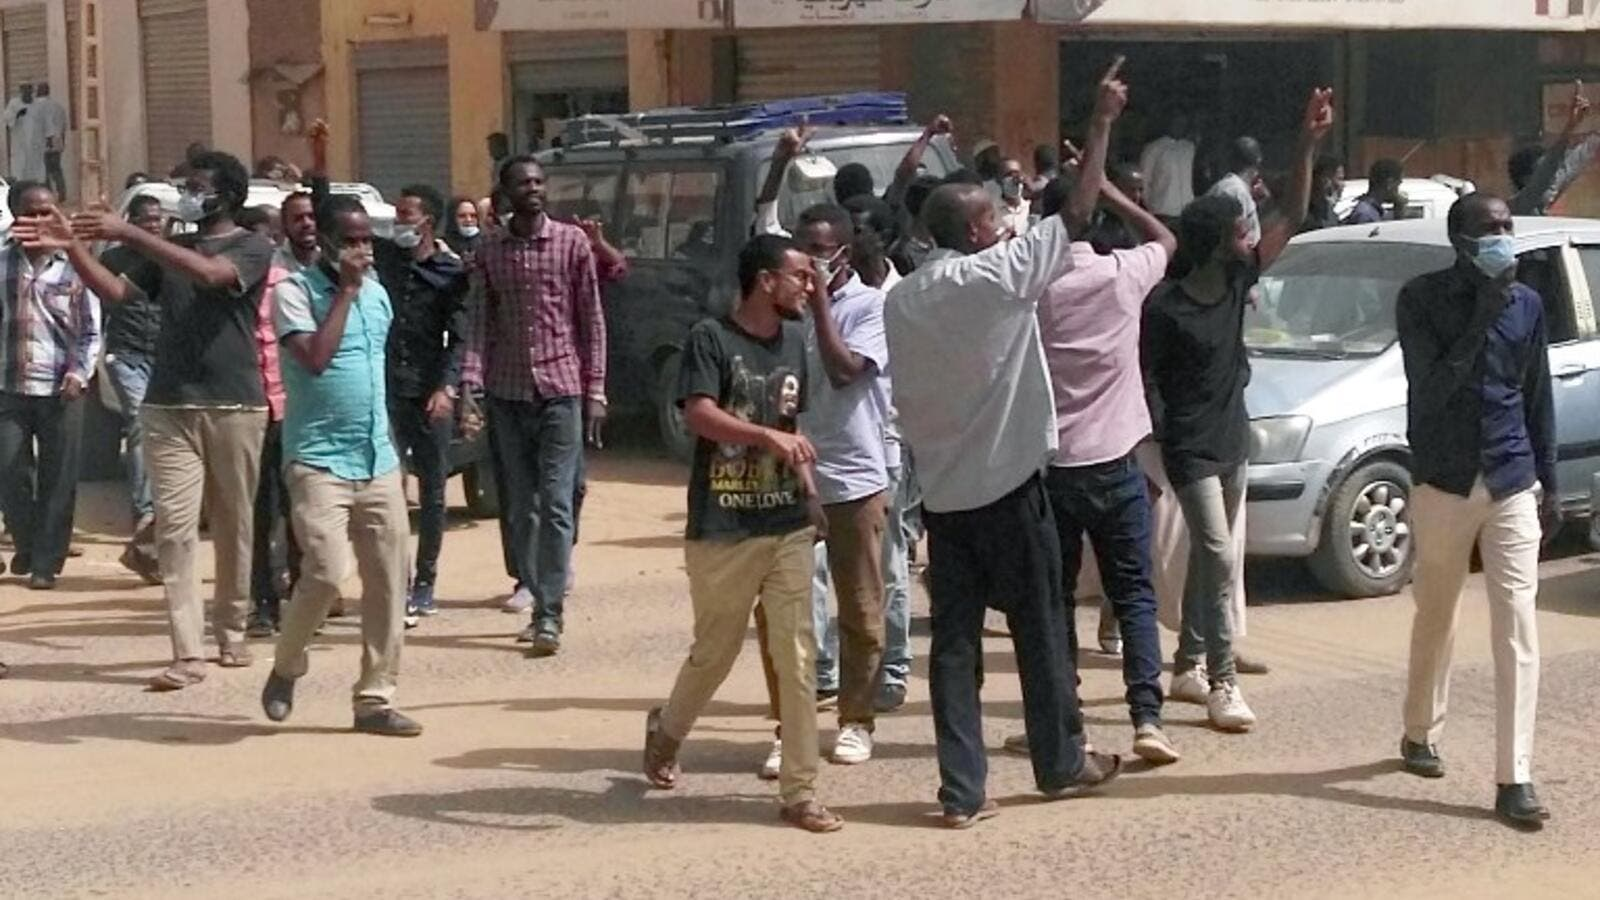 Sudanese protesters take part in an anti-government demonstration in Khartoum on February 7, 2019. (AFP/ File Photo)